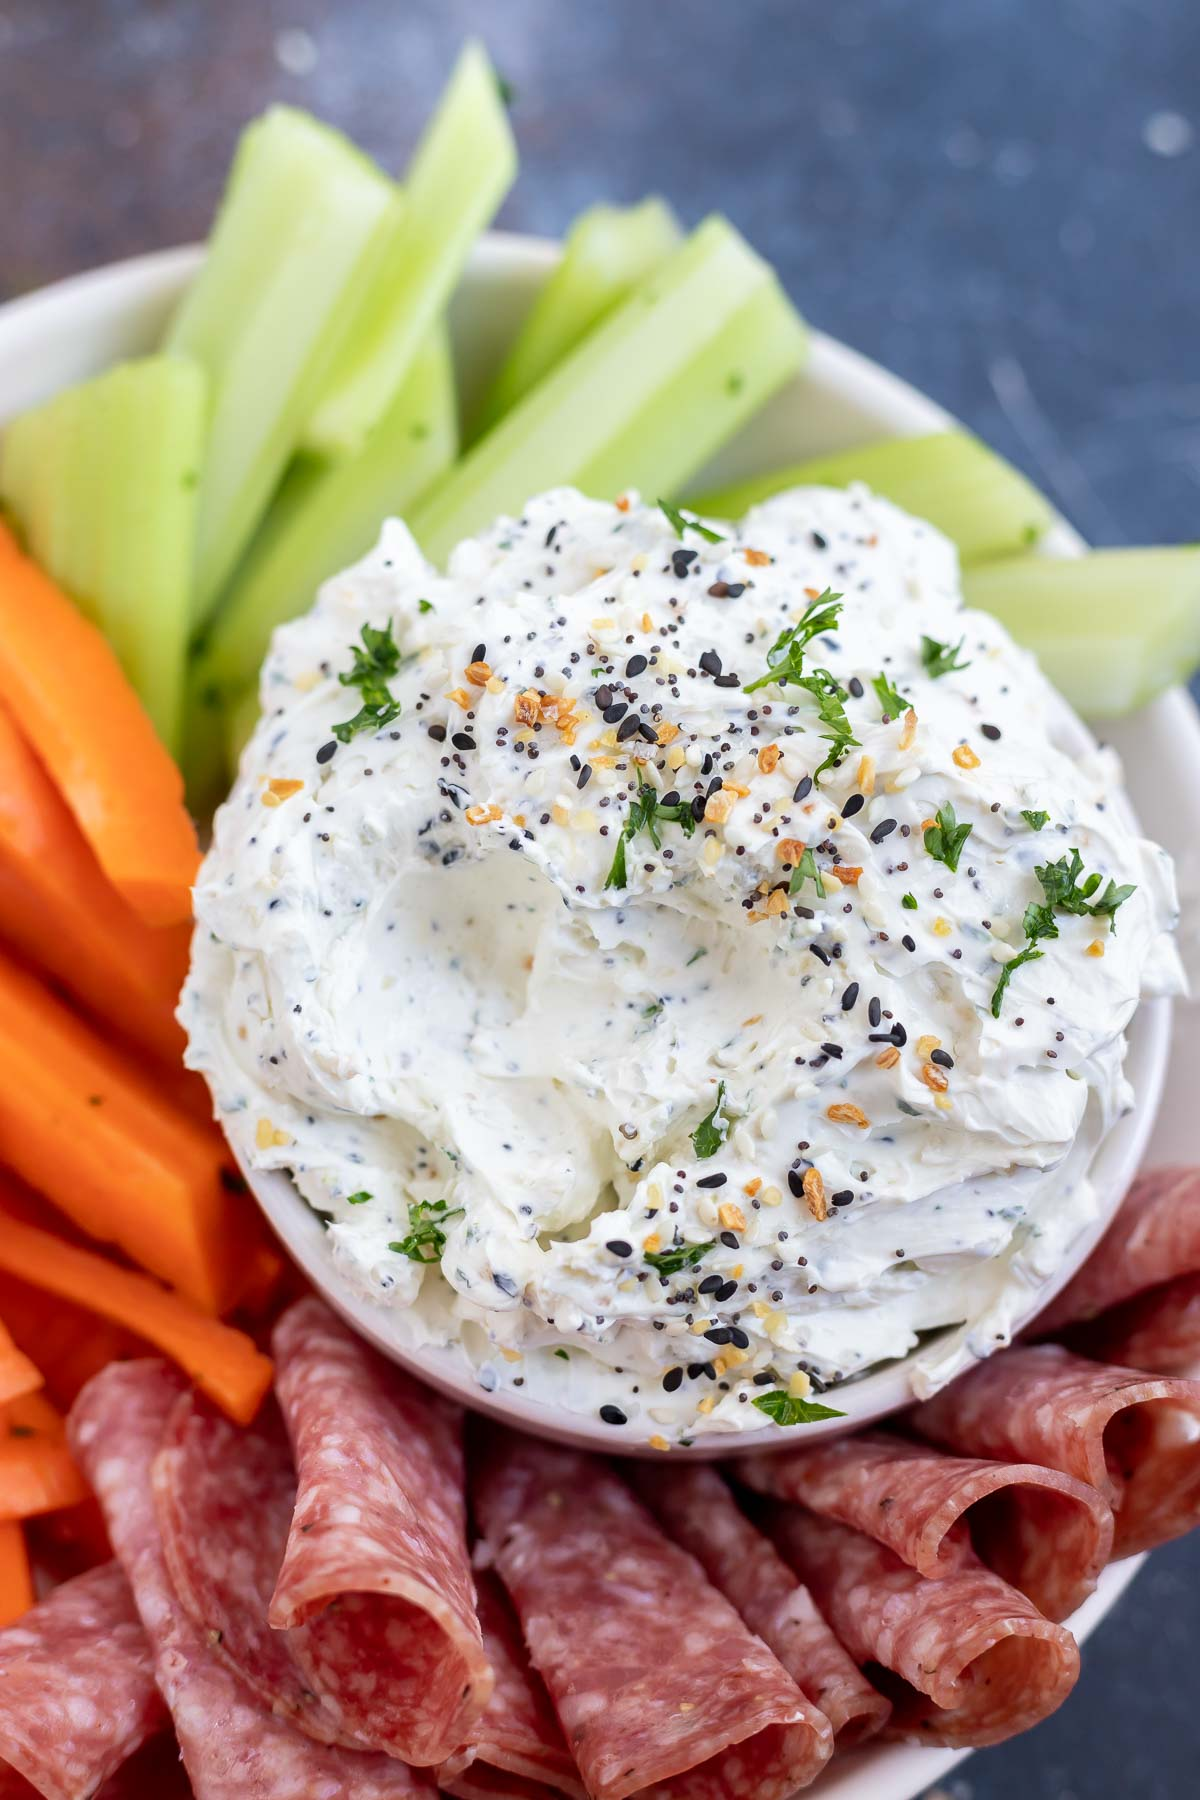 cream cheese dip topped with bagel seasoning and parsley surrounded by veggies